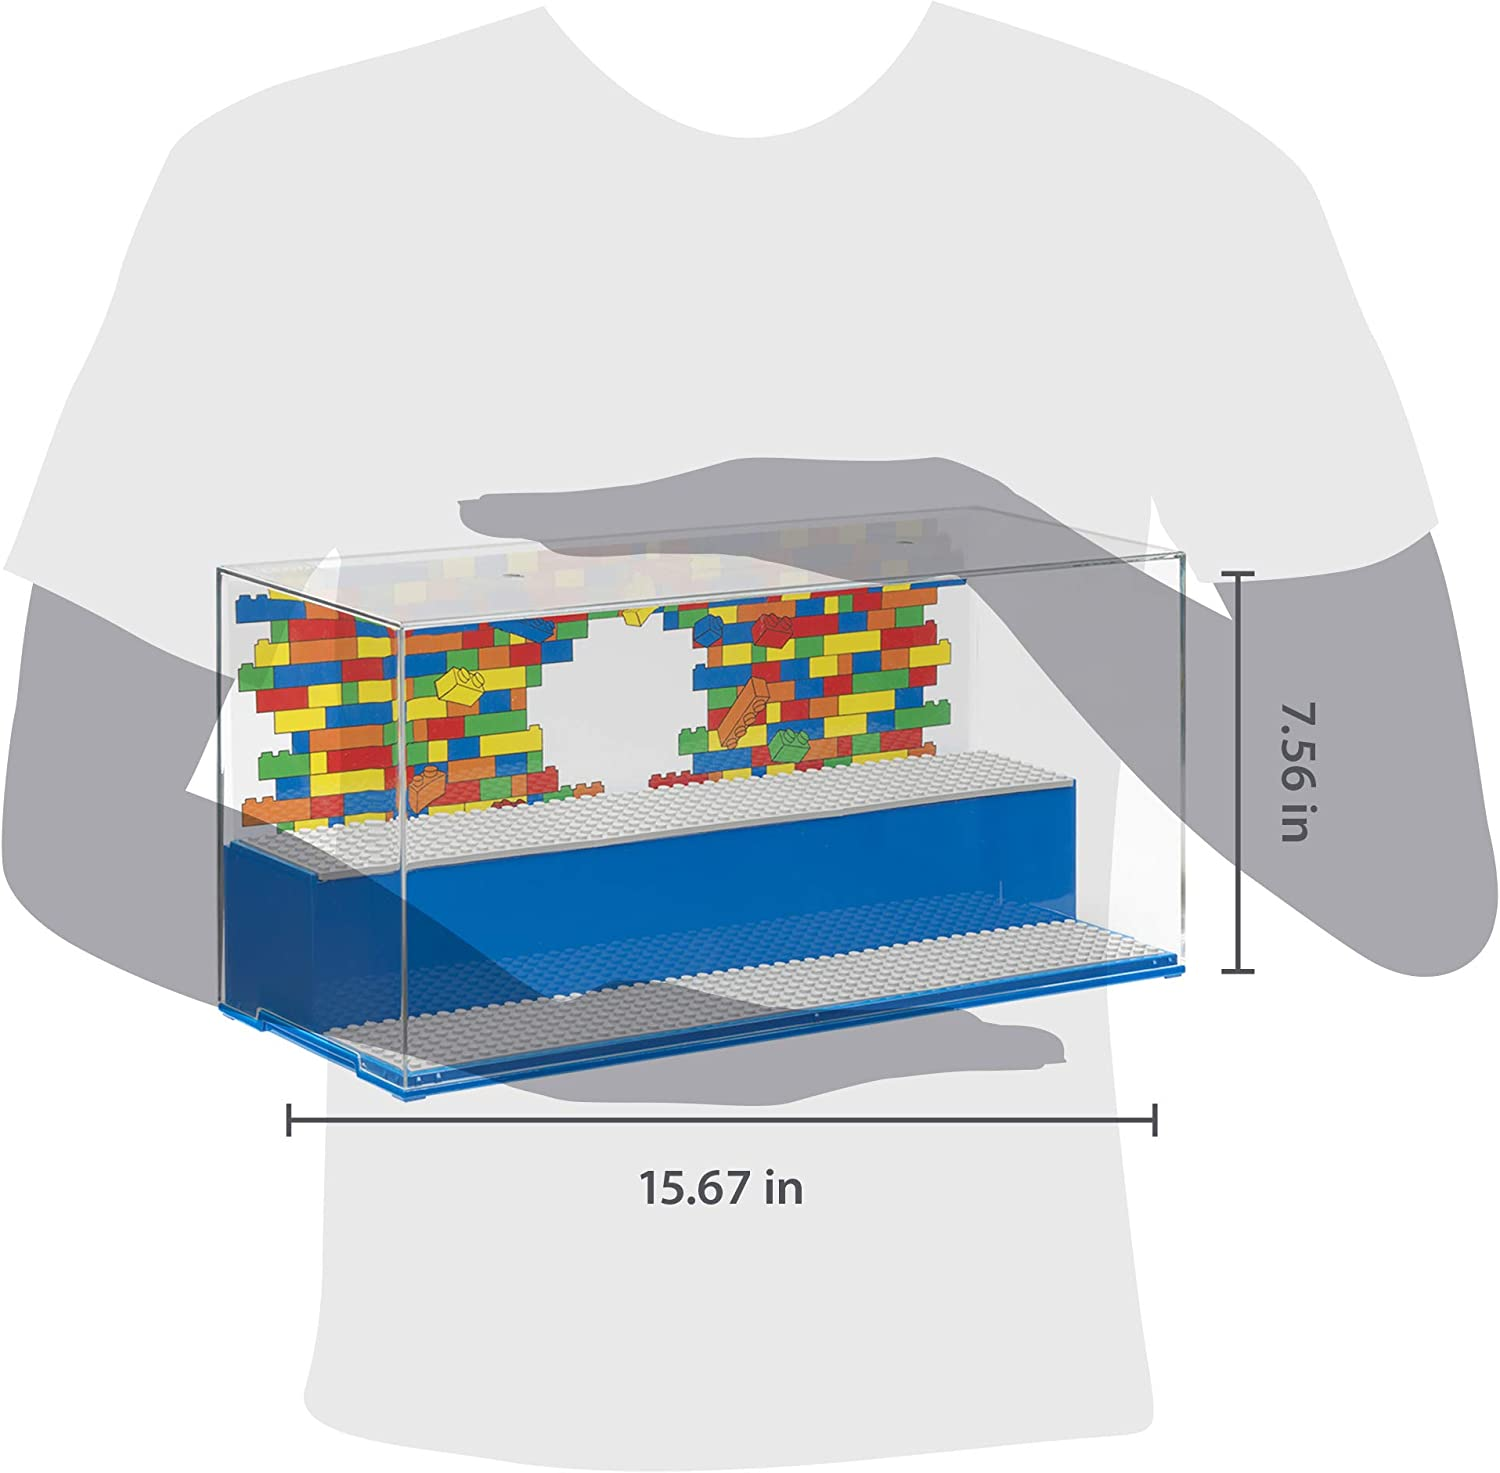 Room Copenhagen Lego Play and Display Case Iconic Blue Includes Baseplates and Backdrop